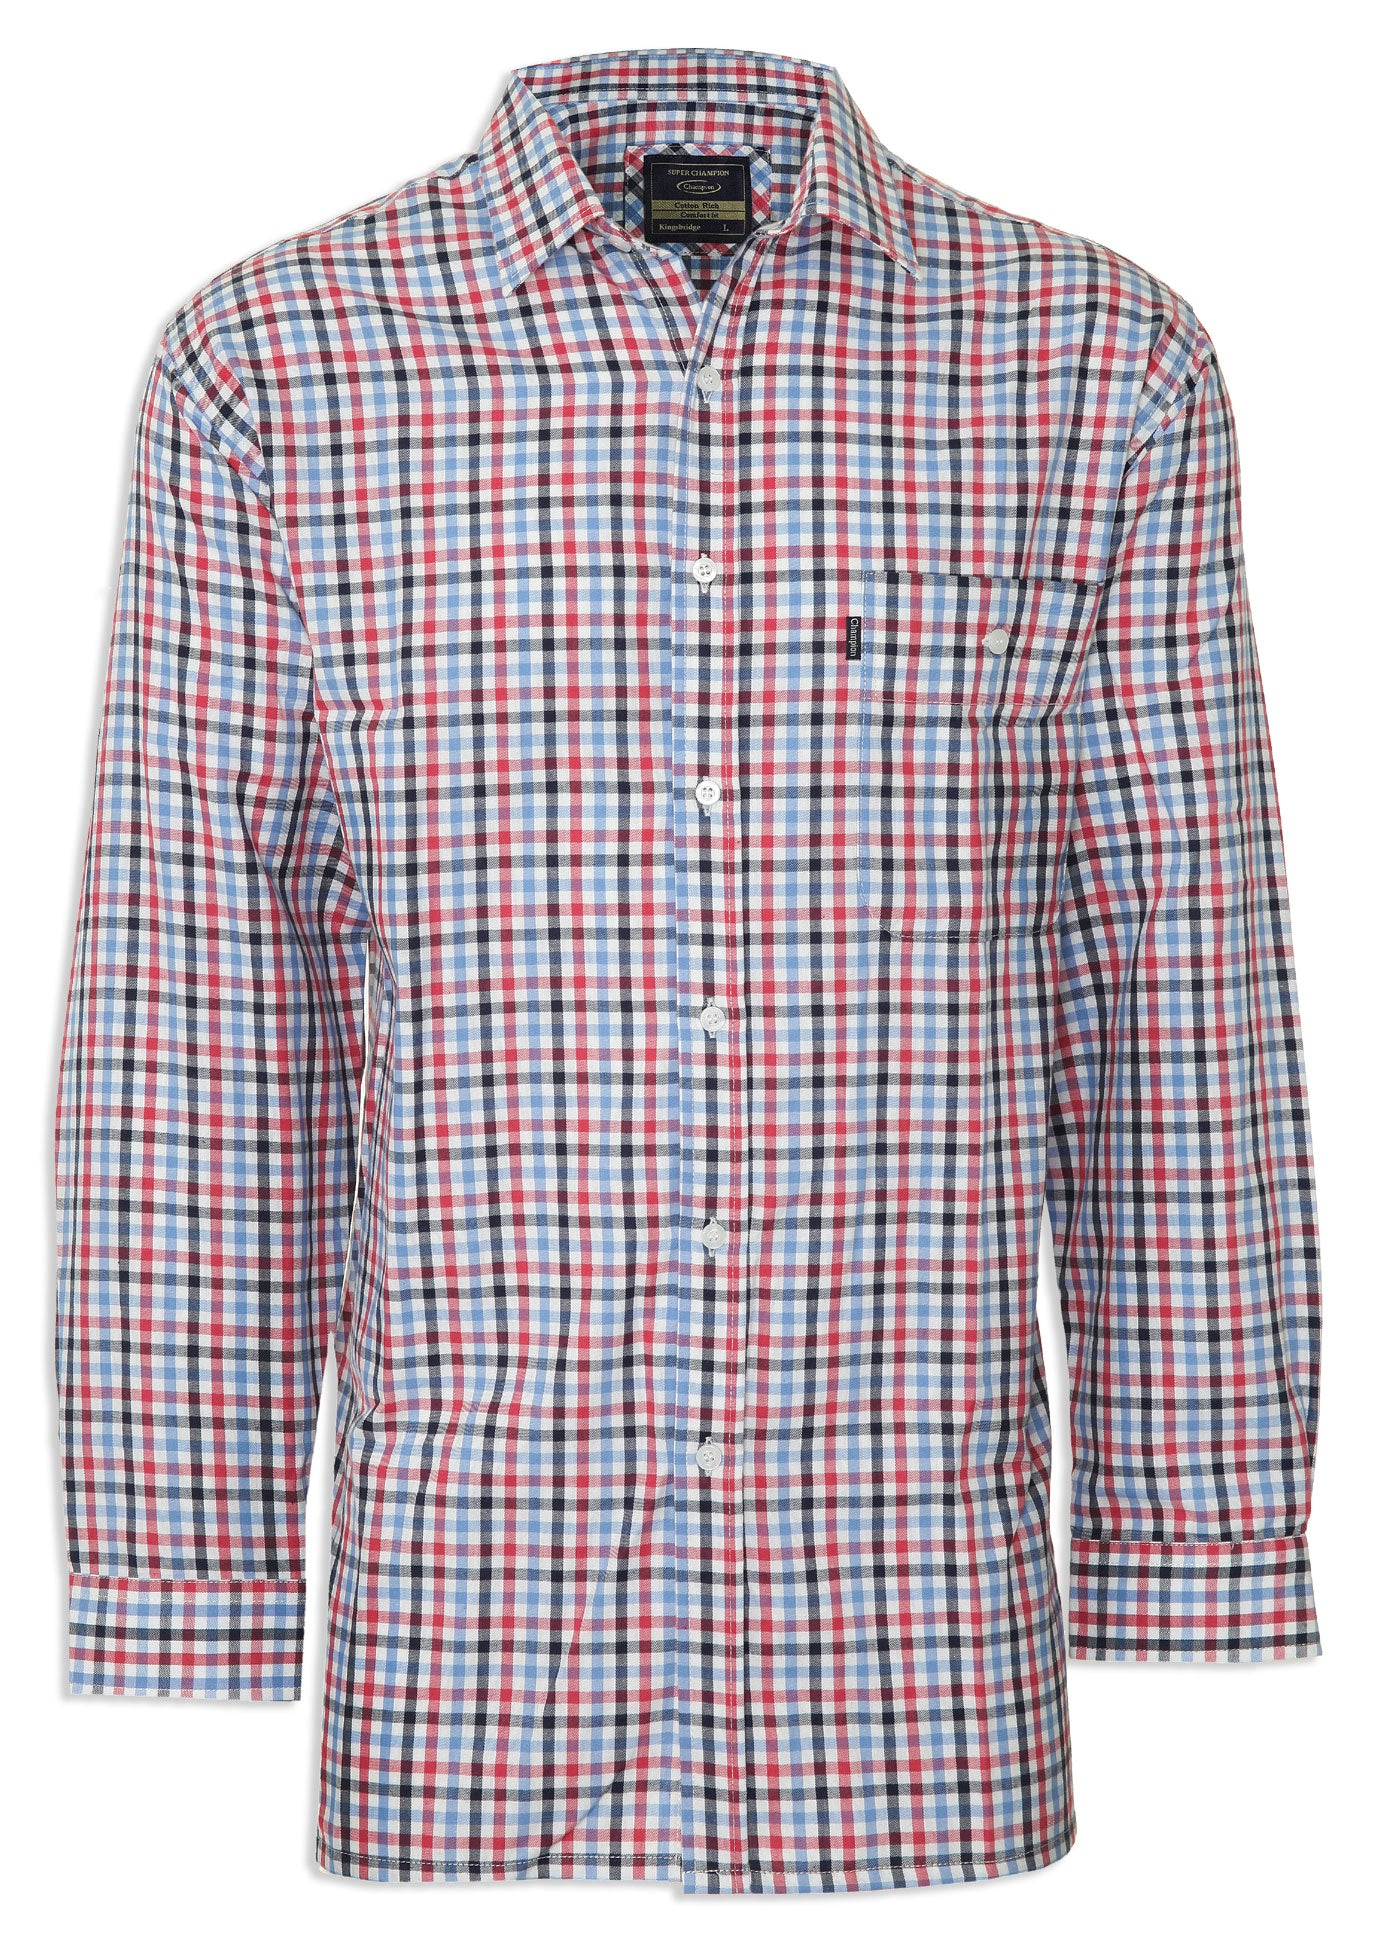 red smart Regimental check Shirt at very appealing price